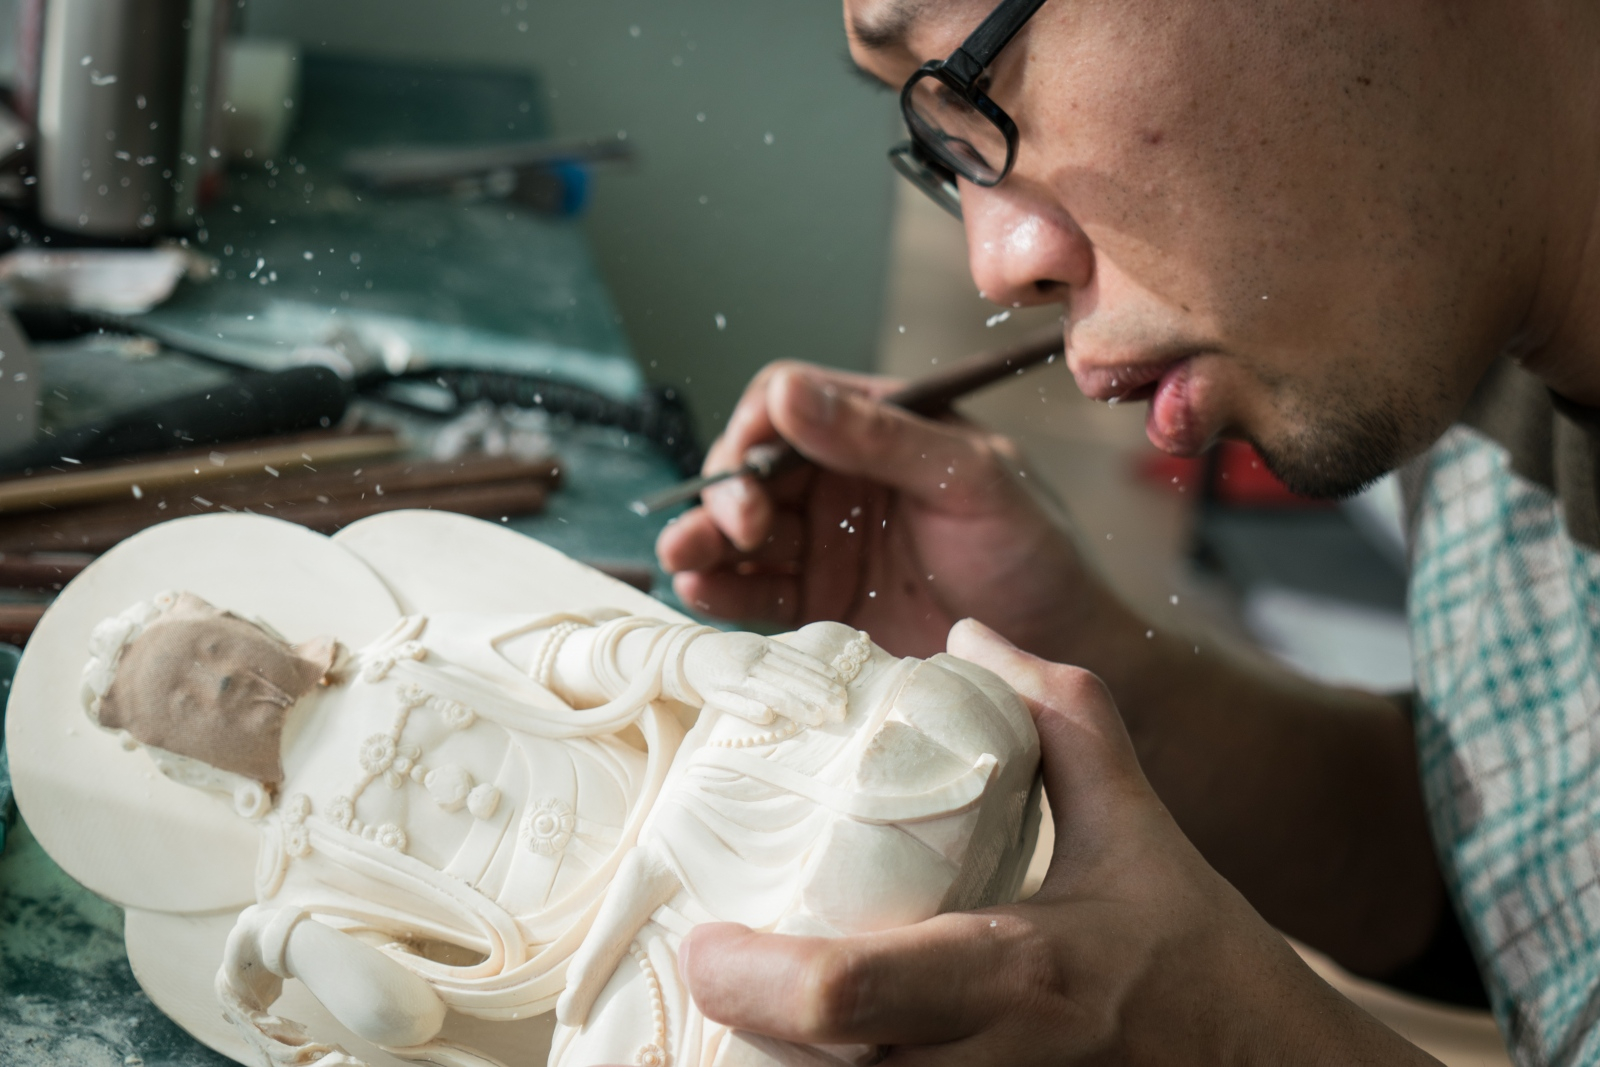 Ivory dust flies as Zhang Yong blows it away during carving at Li Chunke's ivory carving workshop in Beijing, China on December 10, 2017.